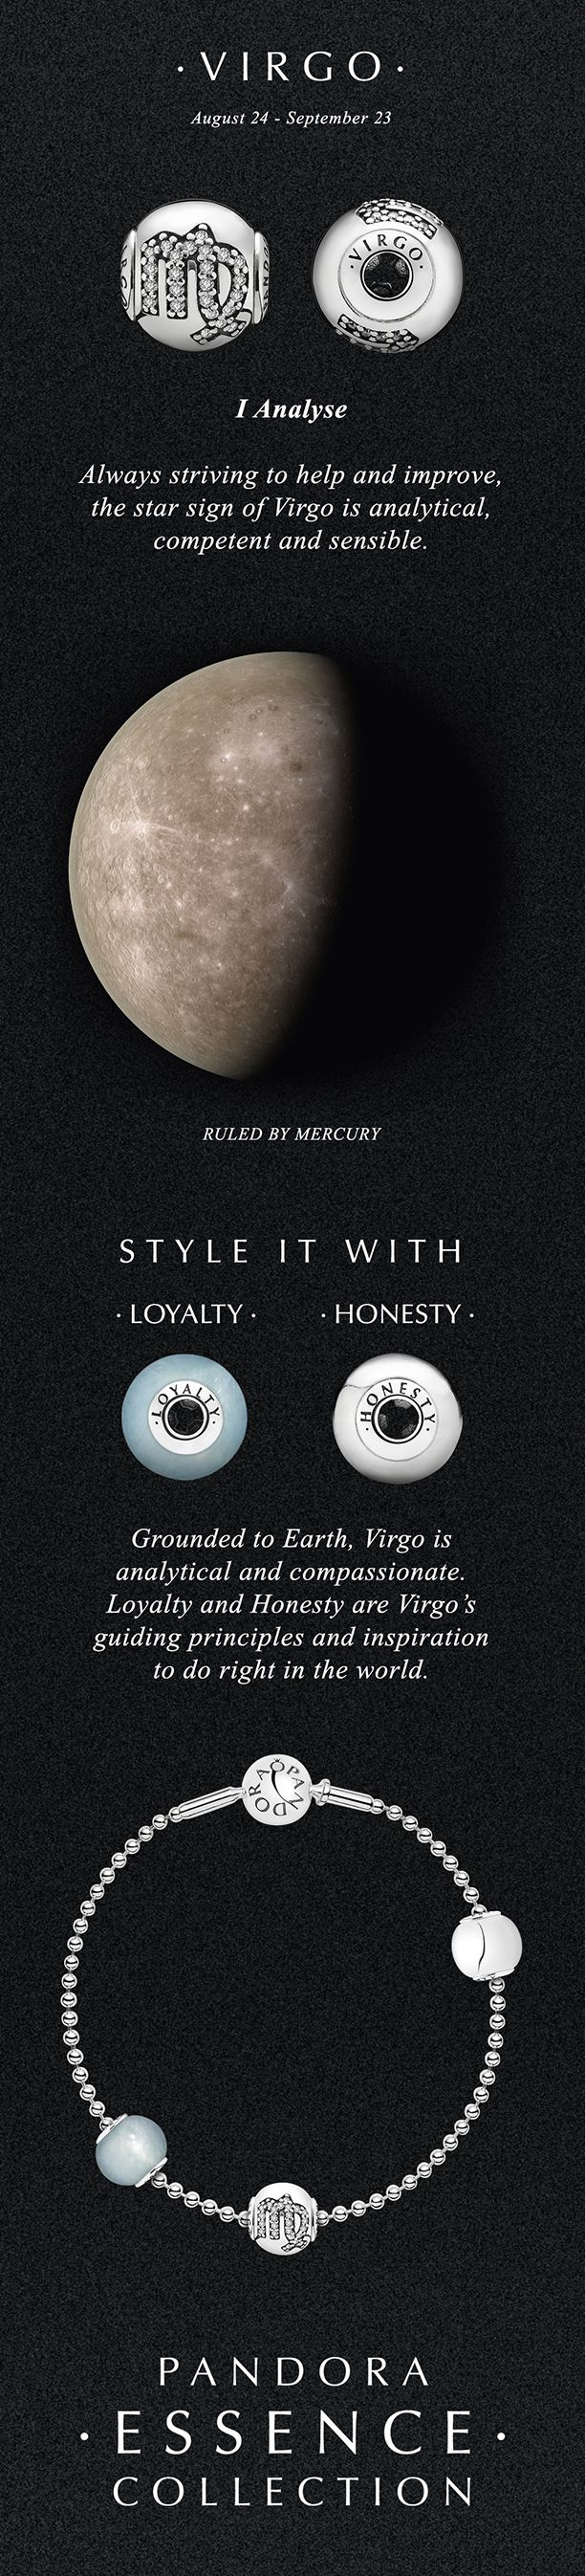 According to ancient myths, the glyph for Virgo represents a maiden holding a sheaf of barley.#PANDORA #PANDORAessencecollection #StarSigns